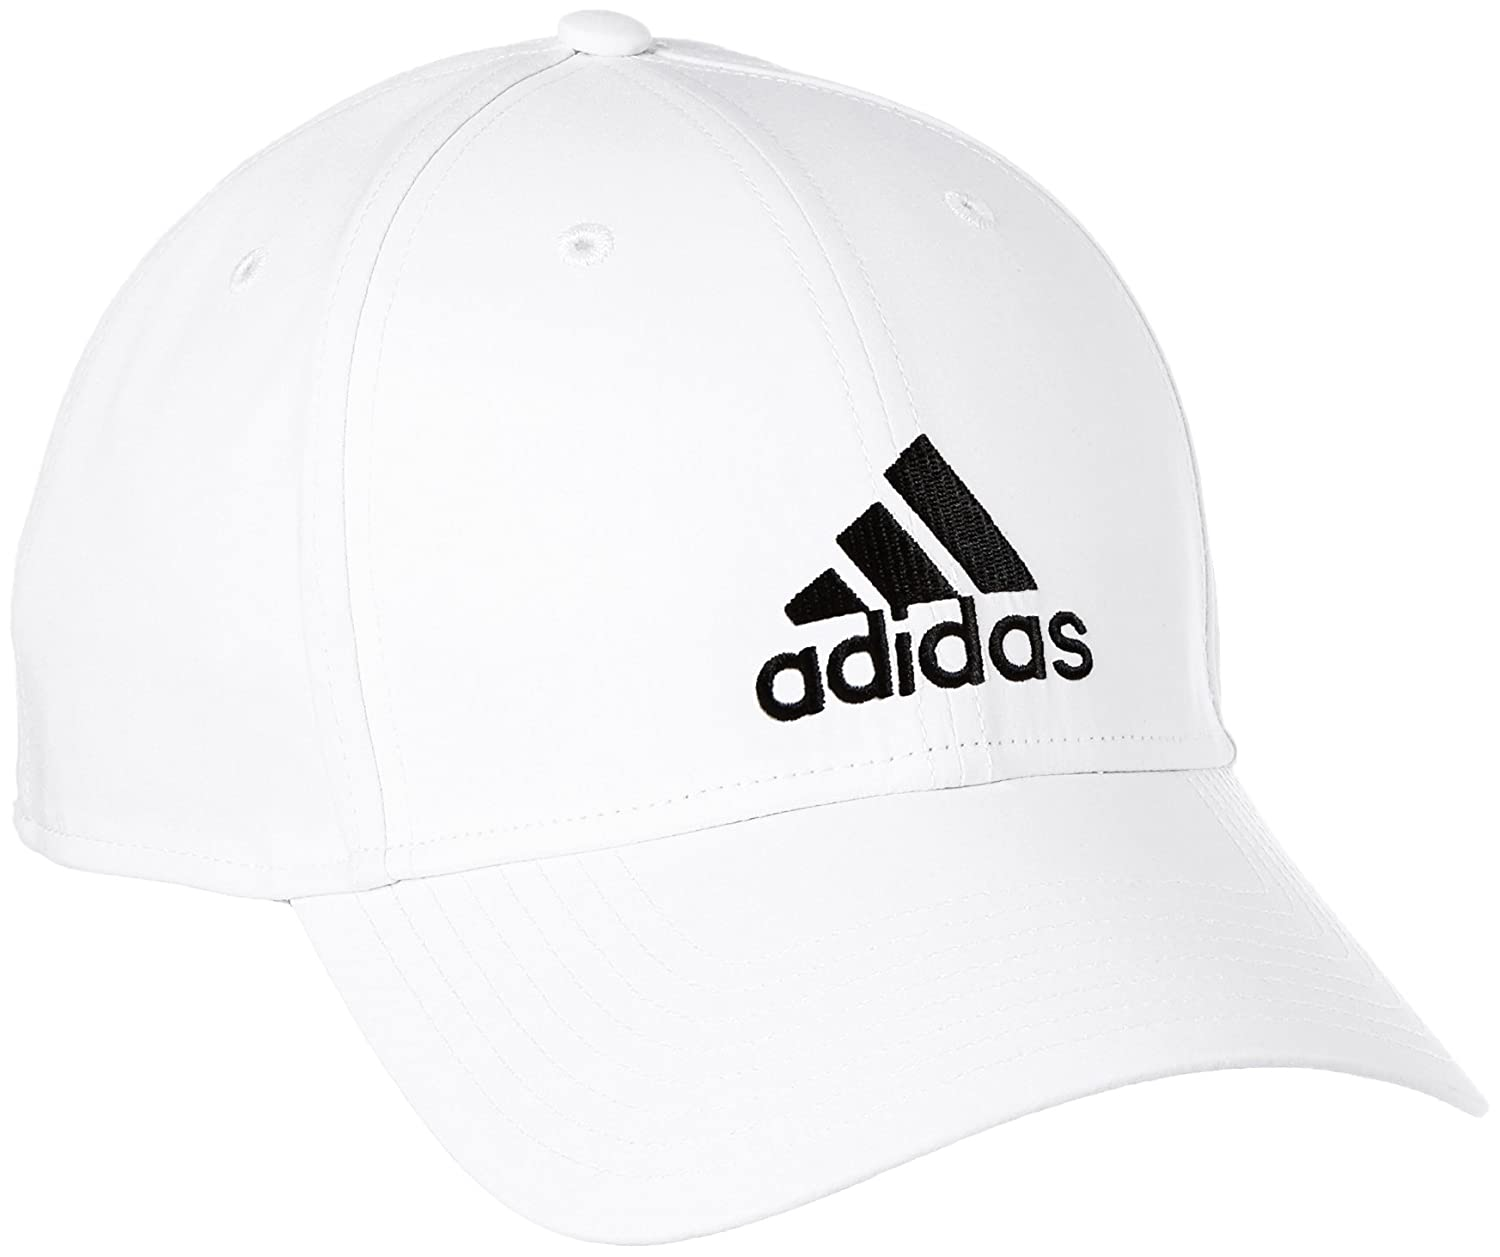 adidas Unisex Six-panel Lightweight Emb Cap  Amazon.co.uk  Sports   Outdoors a8005201095